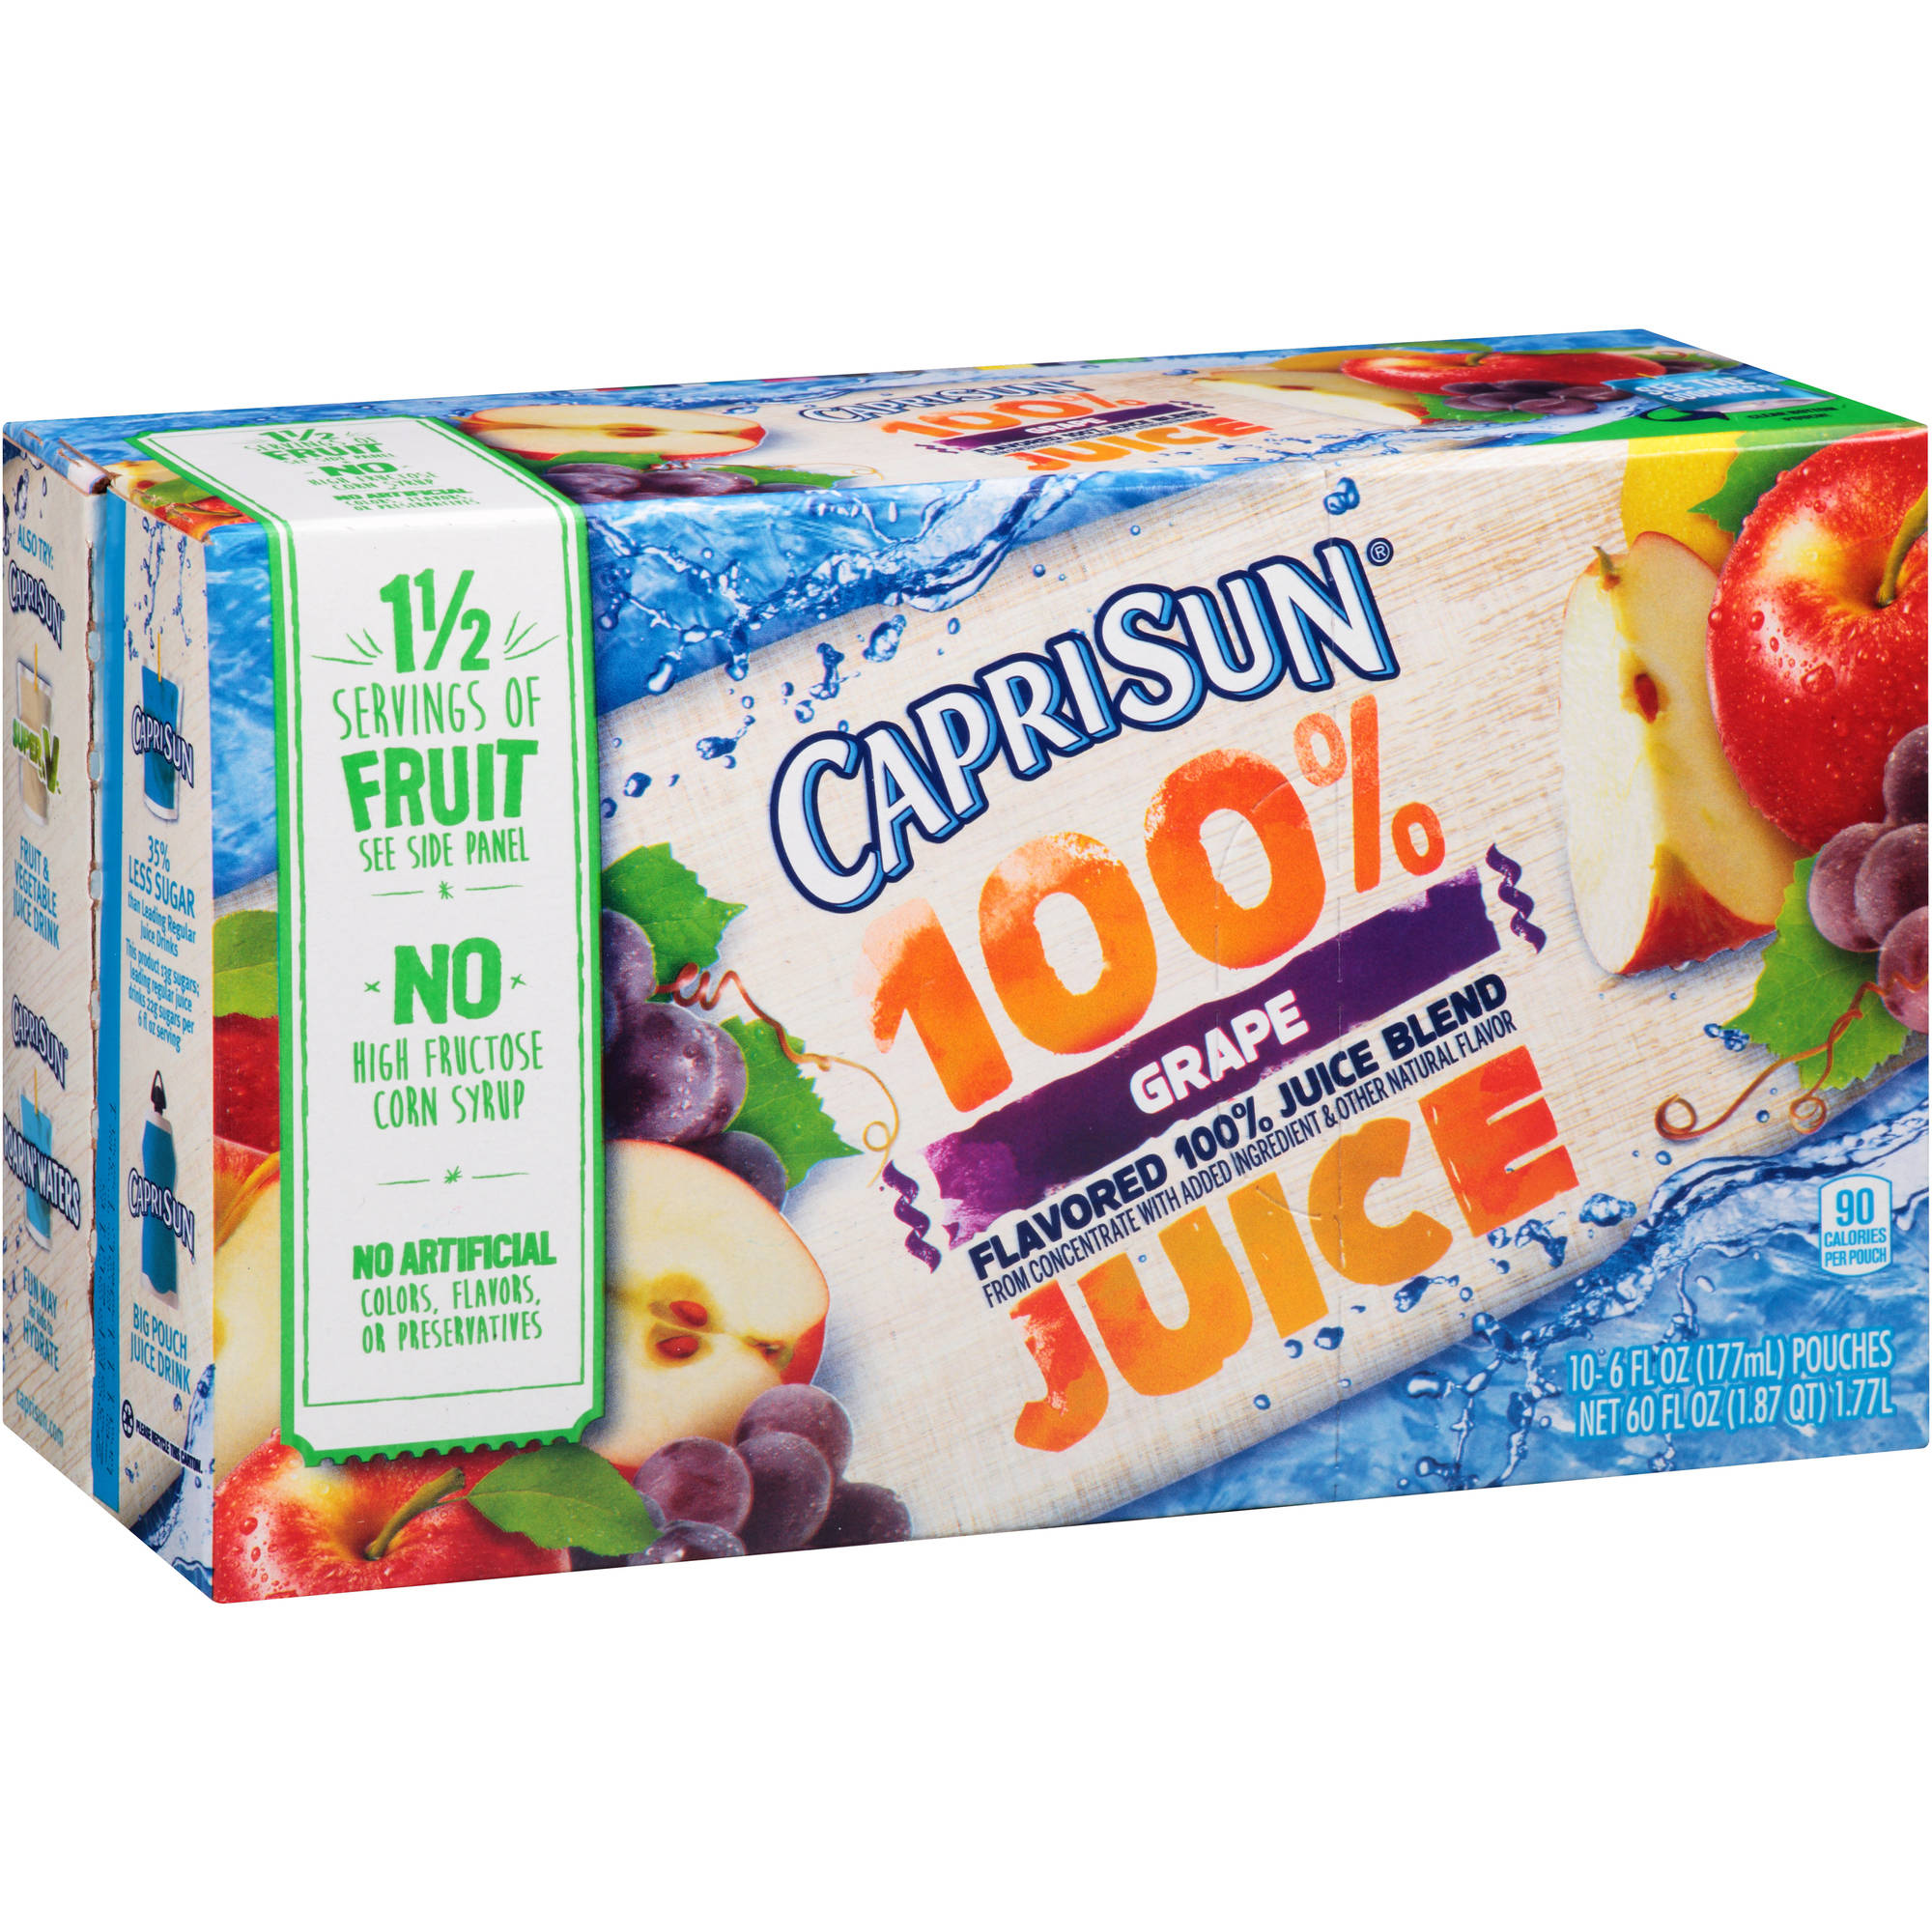 Capri Sun 100% Grape Flavored Juice, 6 fl oz, 10 count